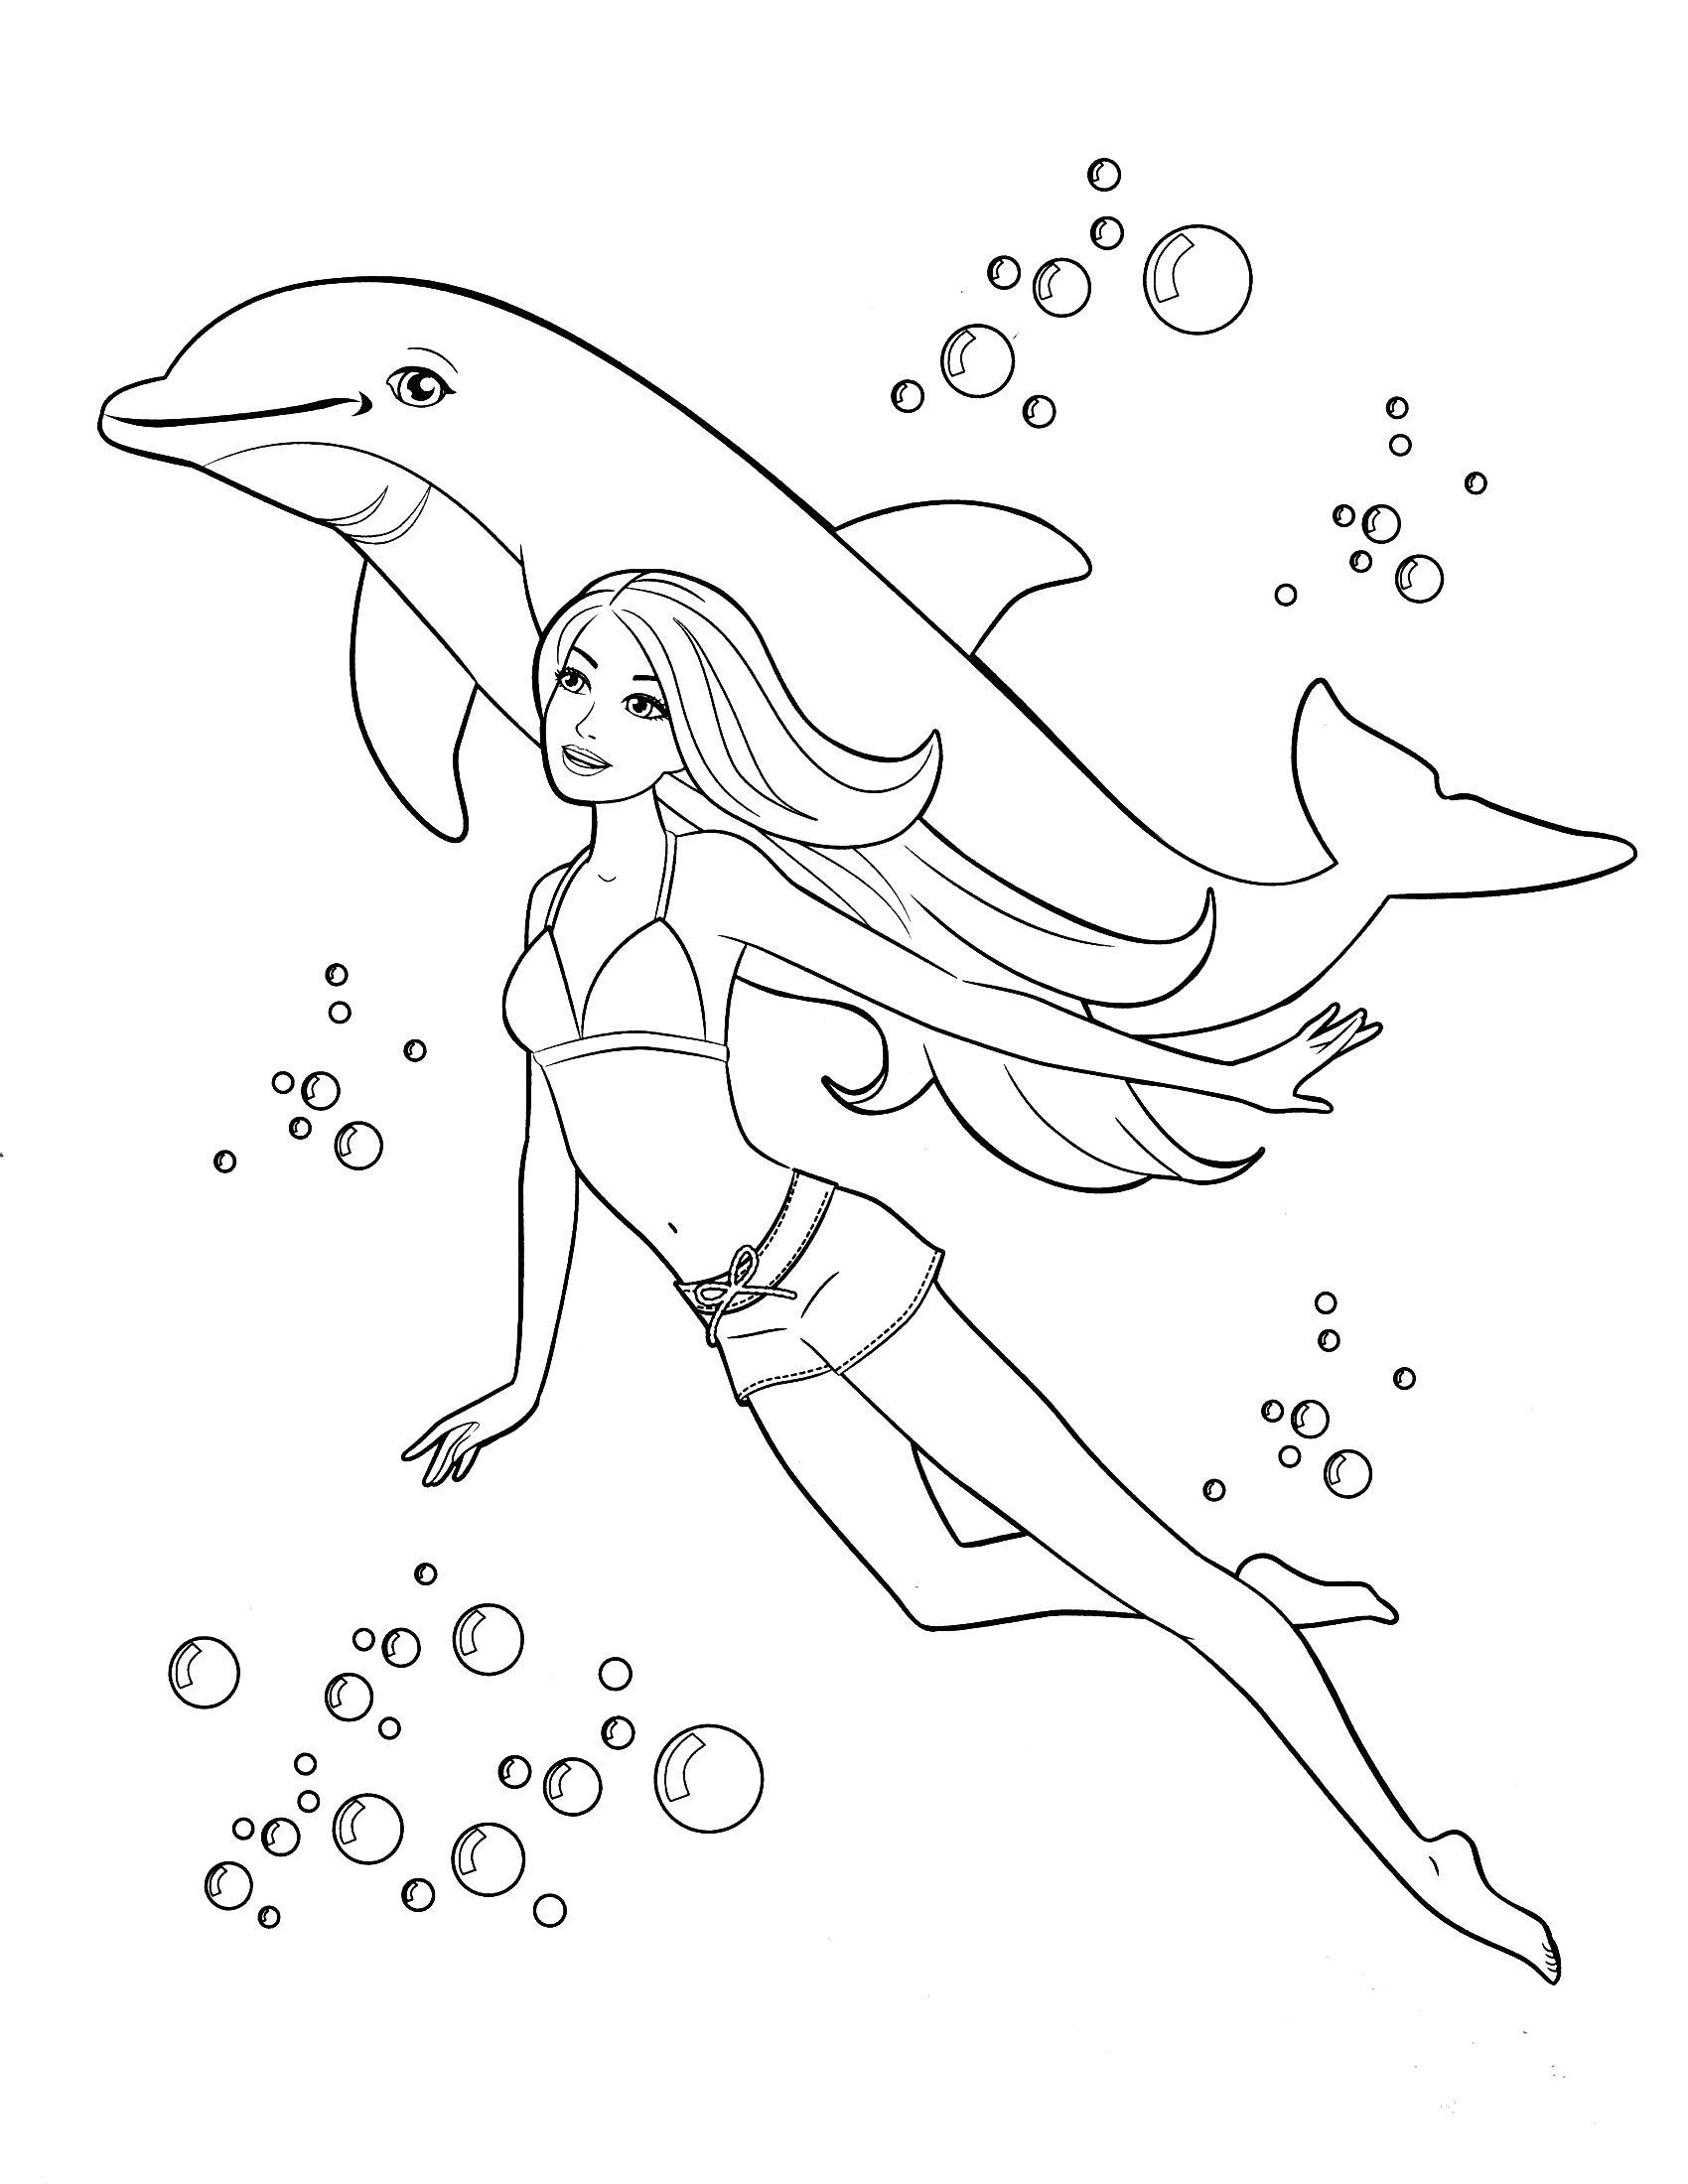 barbie coloring pages full size - photo#17